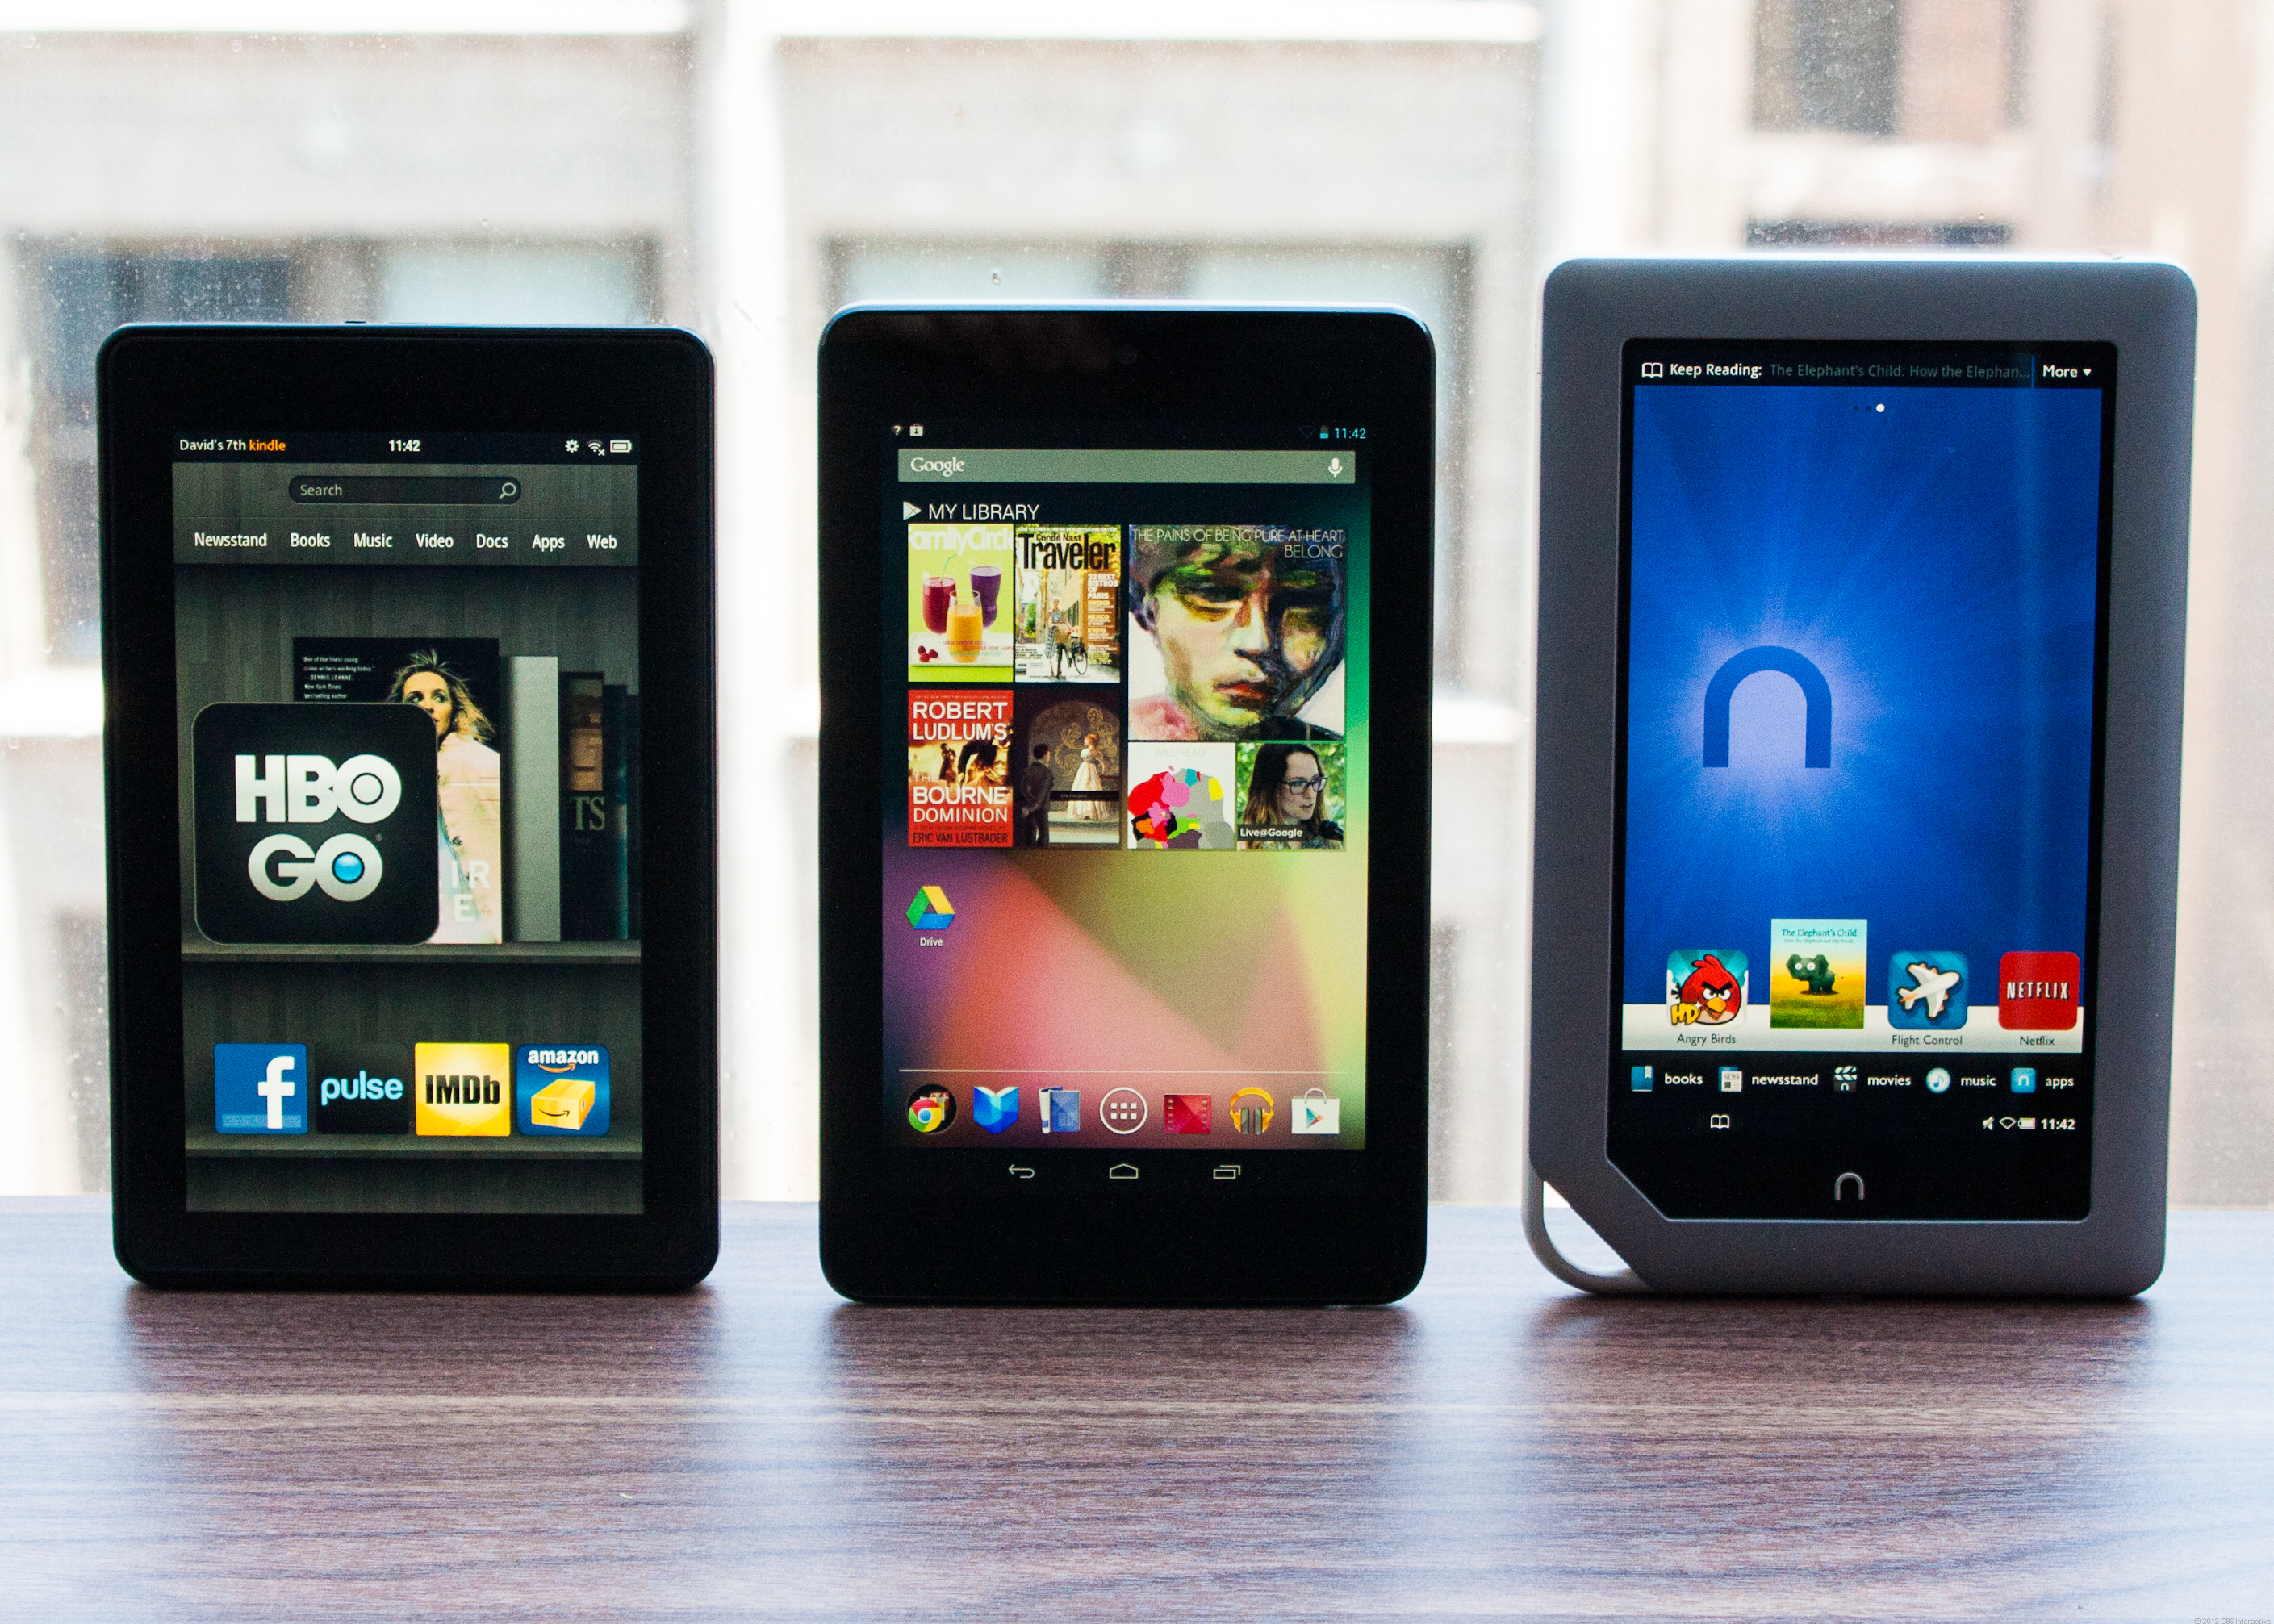 Google is nudging developers to build more tablet-optimized apps for tablets like these: the Nexus 7, the Amazon Kindle Fire and Barnes & Noble Nook Tablet.